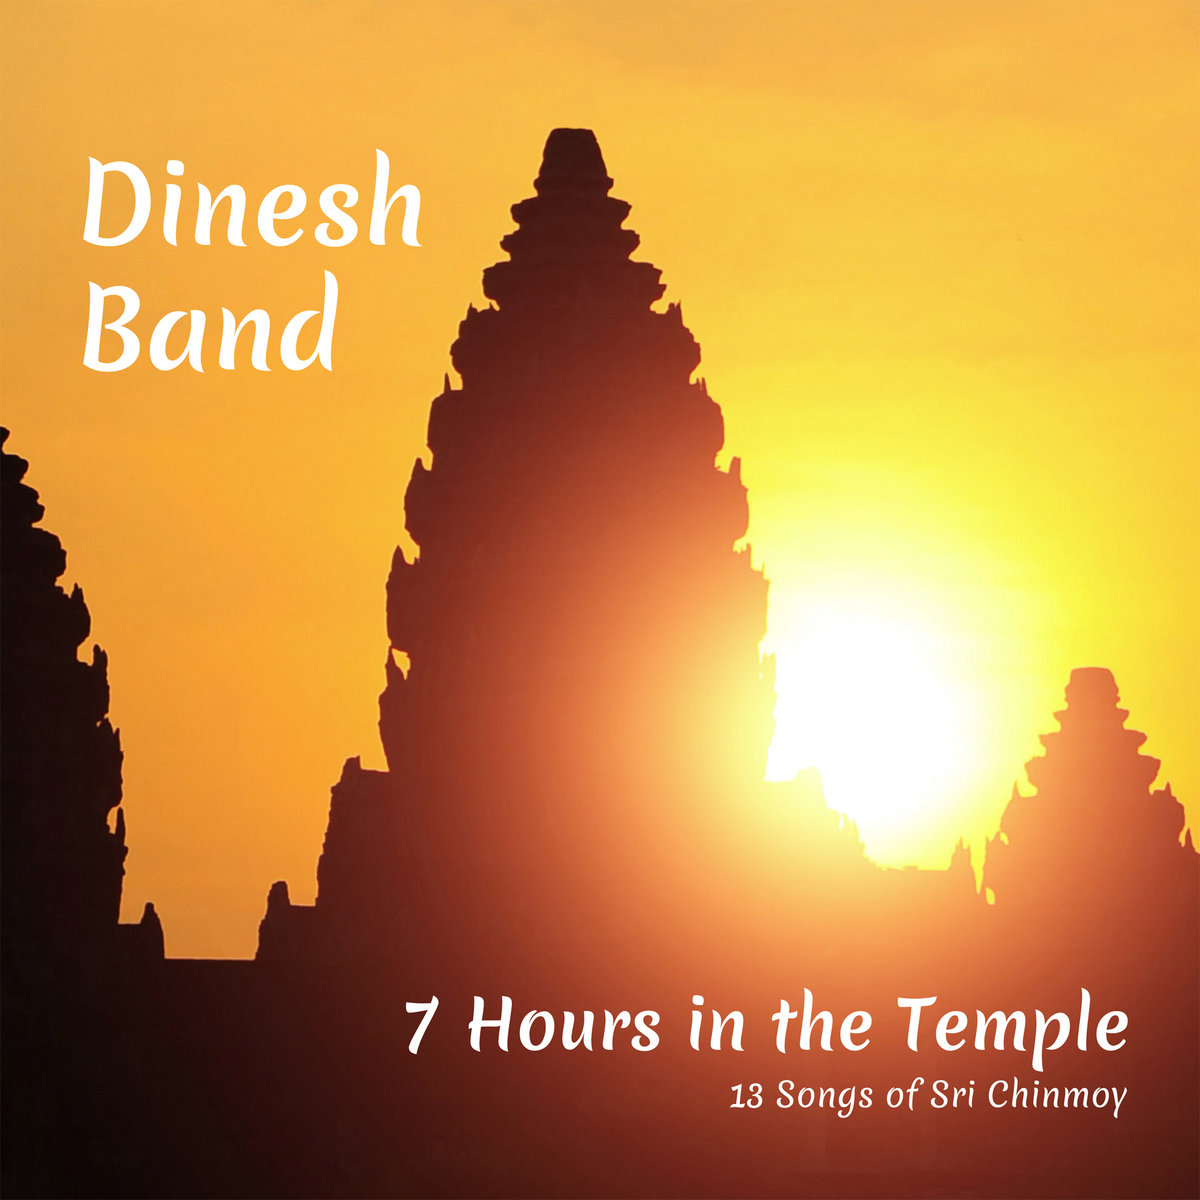 7 Hours in the Temple | Dinesh Band